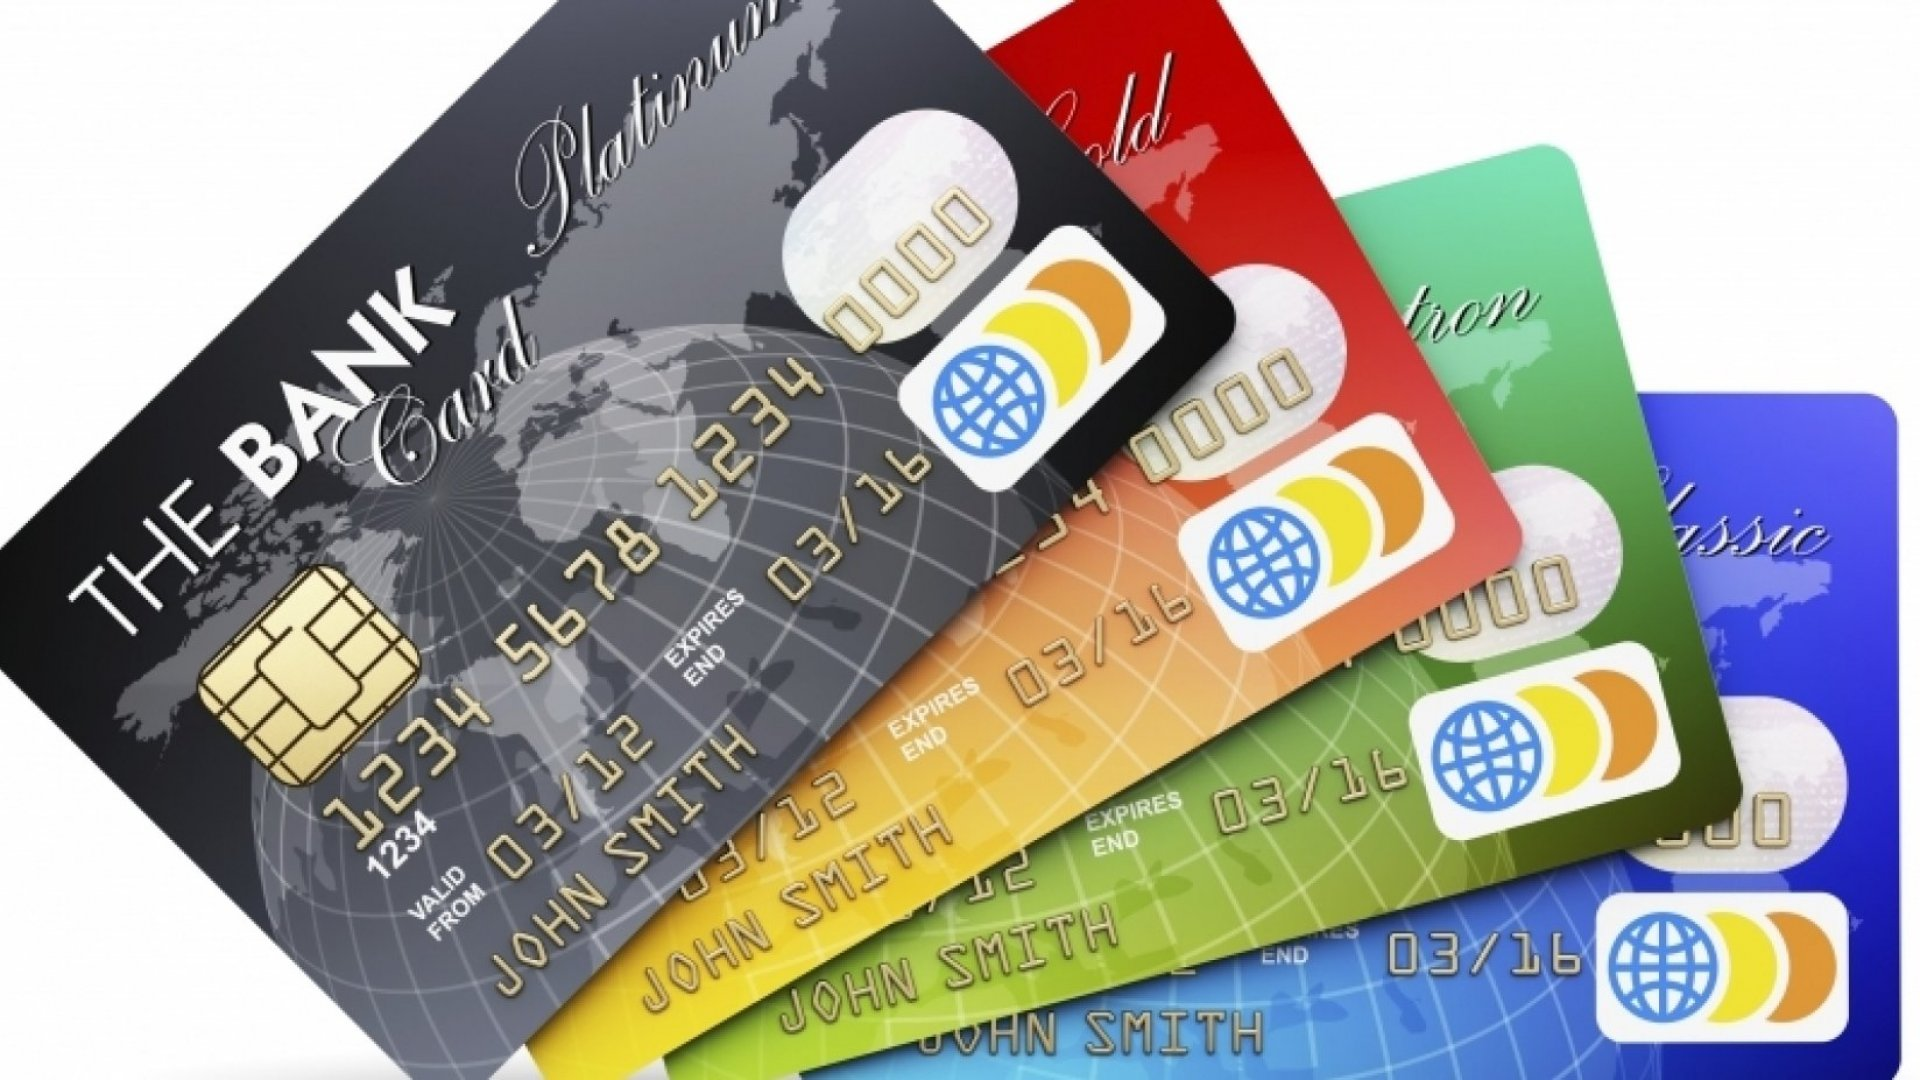 How to Find the Best Credit Cards For Business and Personal Use